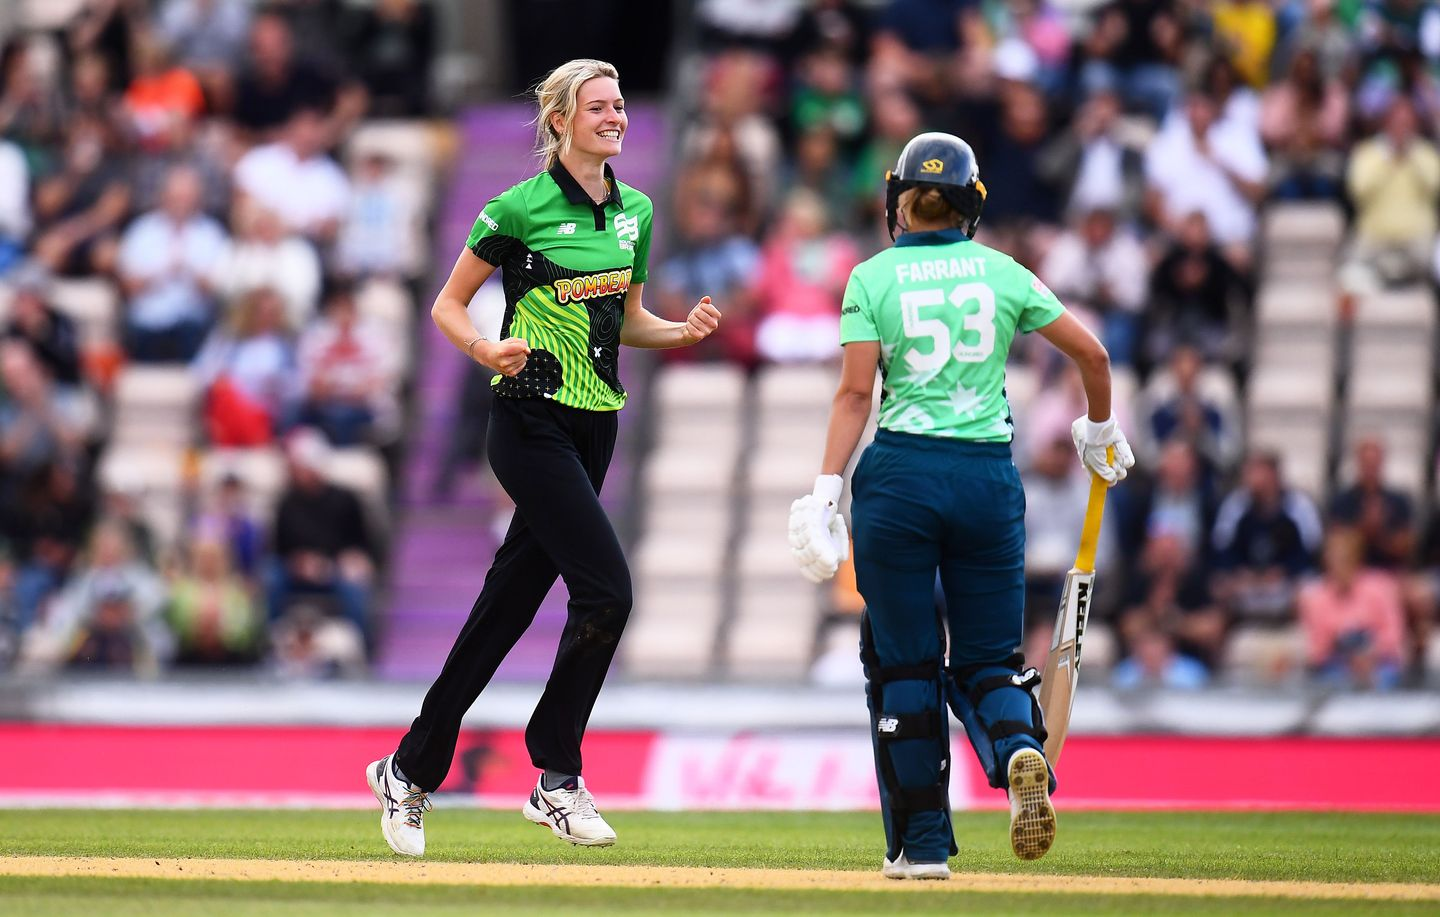 Three more wickets for Lauren Bell